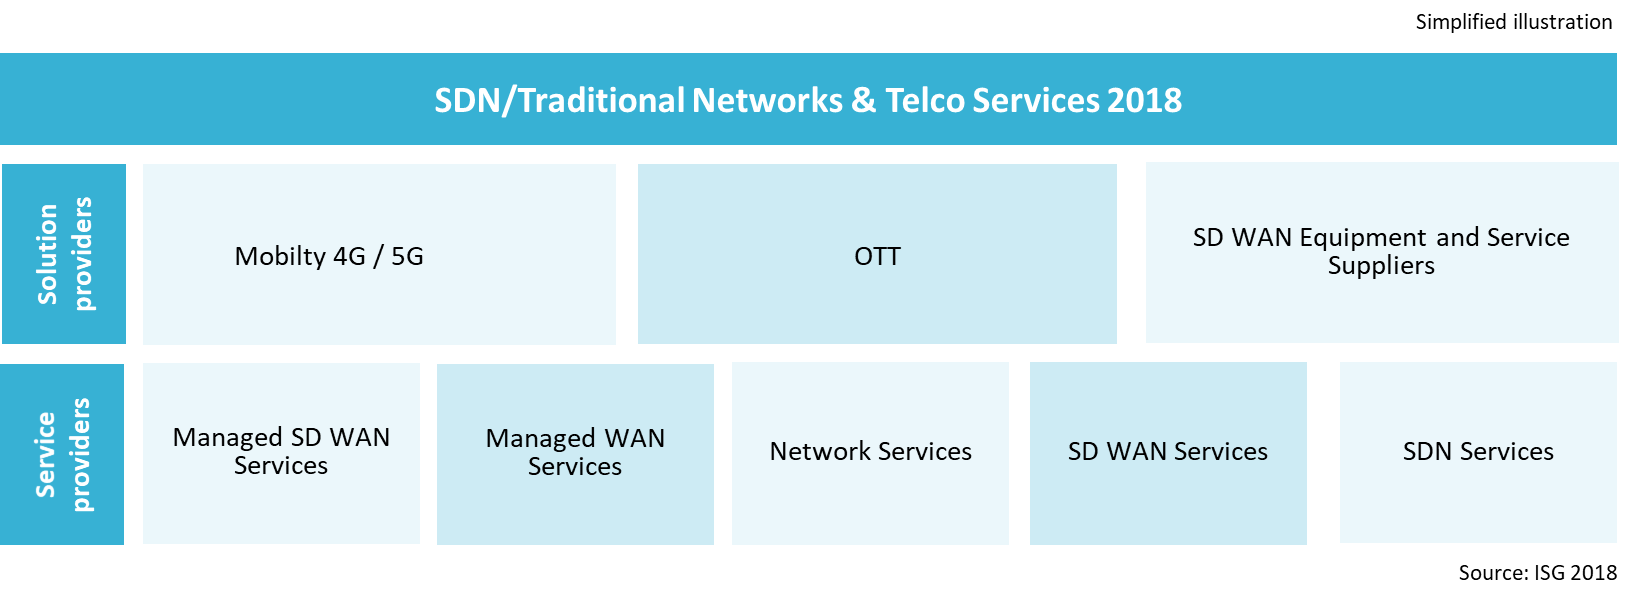 SDN/Traditional Networks Telco Services 2018